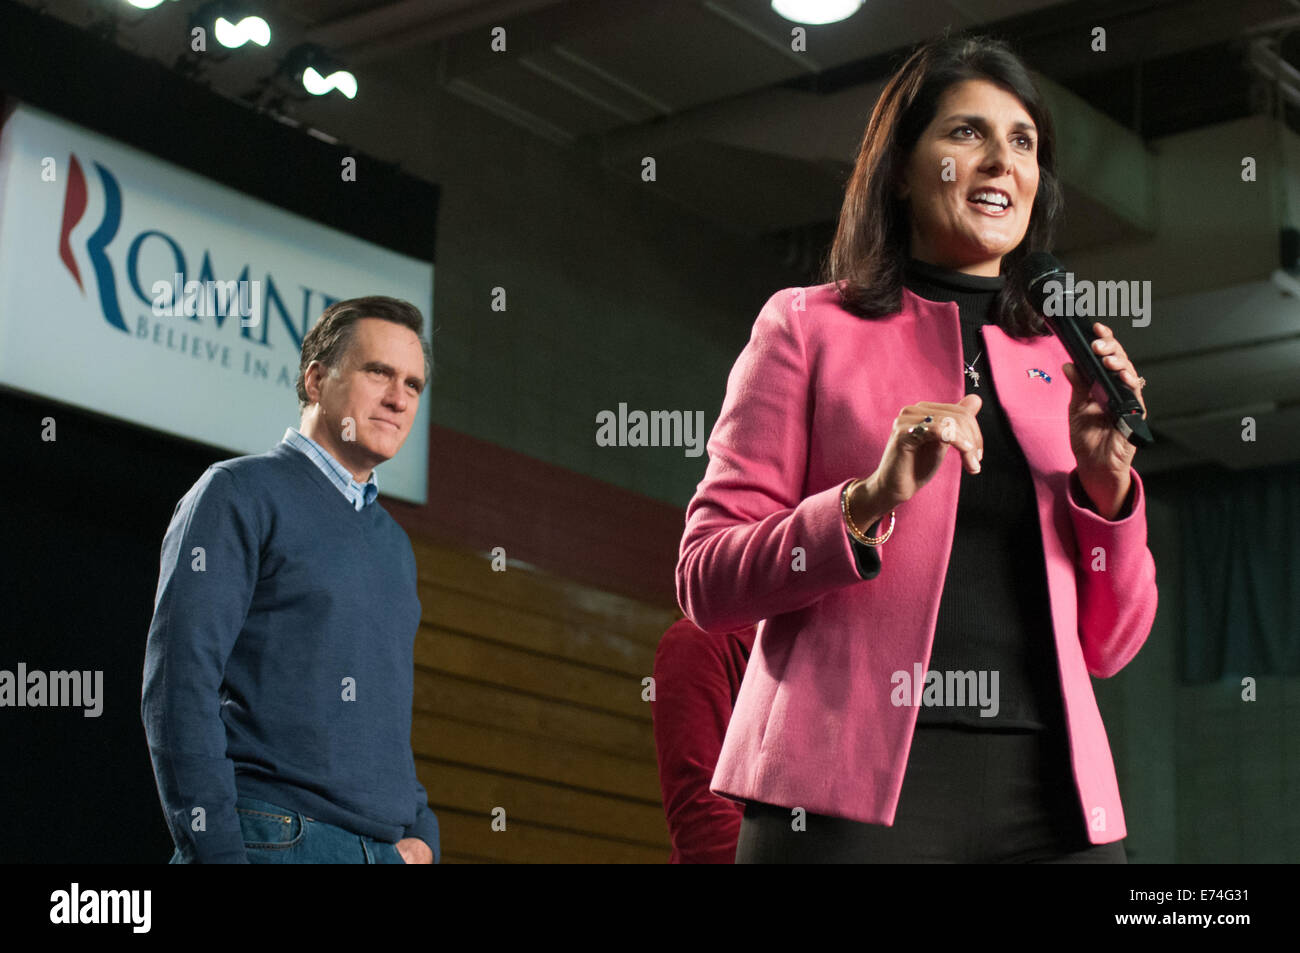 South Carolina governor Nikki Haley holds a campaign rally with Mitt Romney in Derry, NH. 01/07/2014 - Stock Image